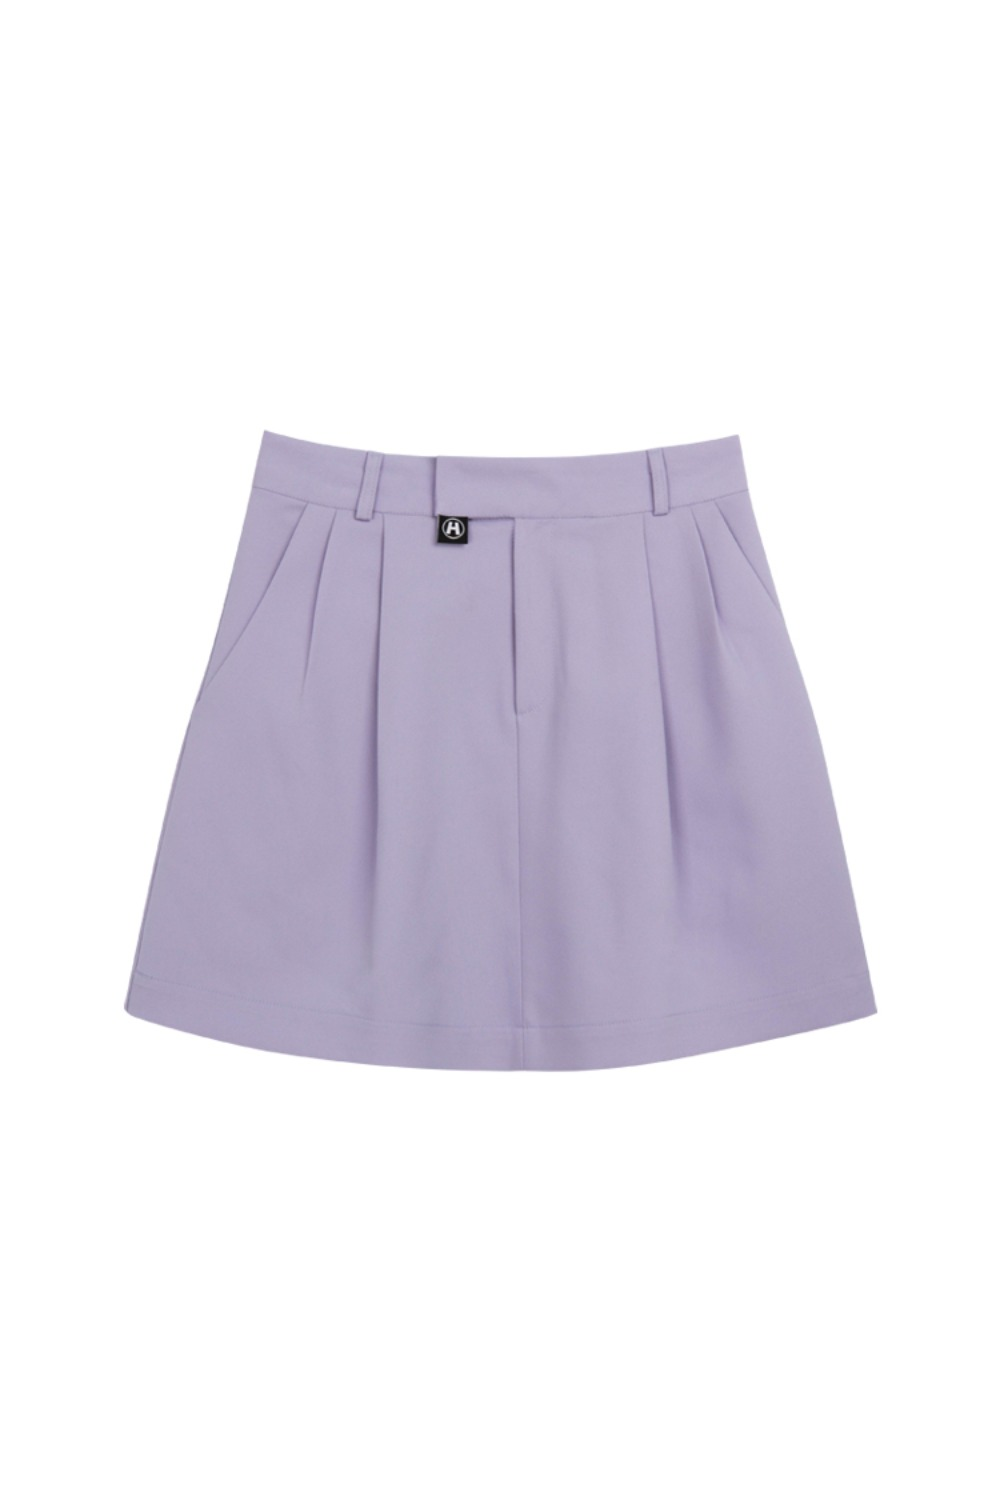 HIDE Pintuck Skirt LIGHT PURPLE